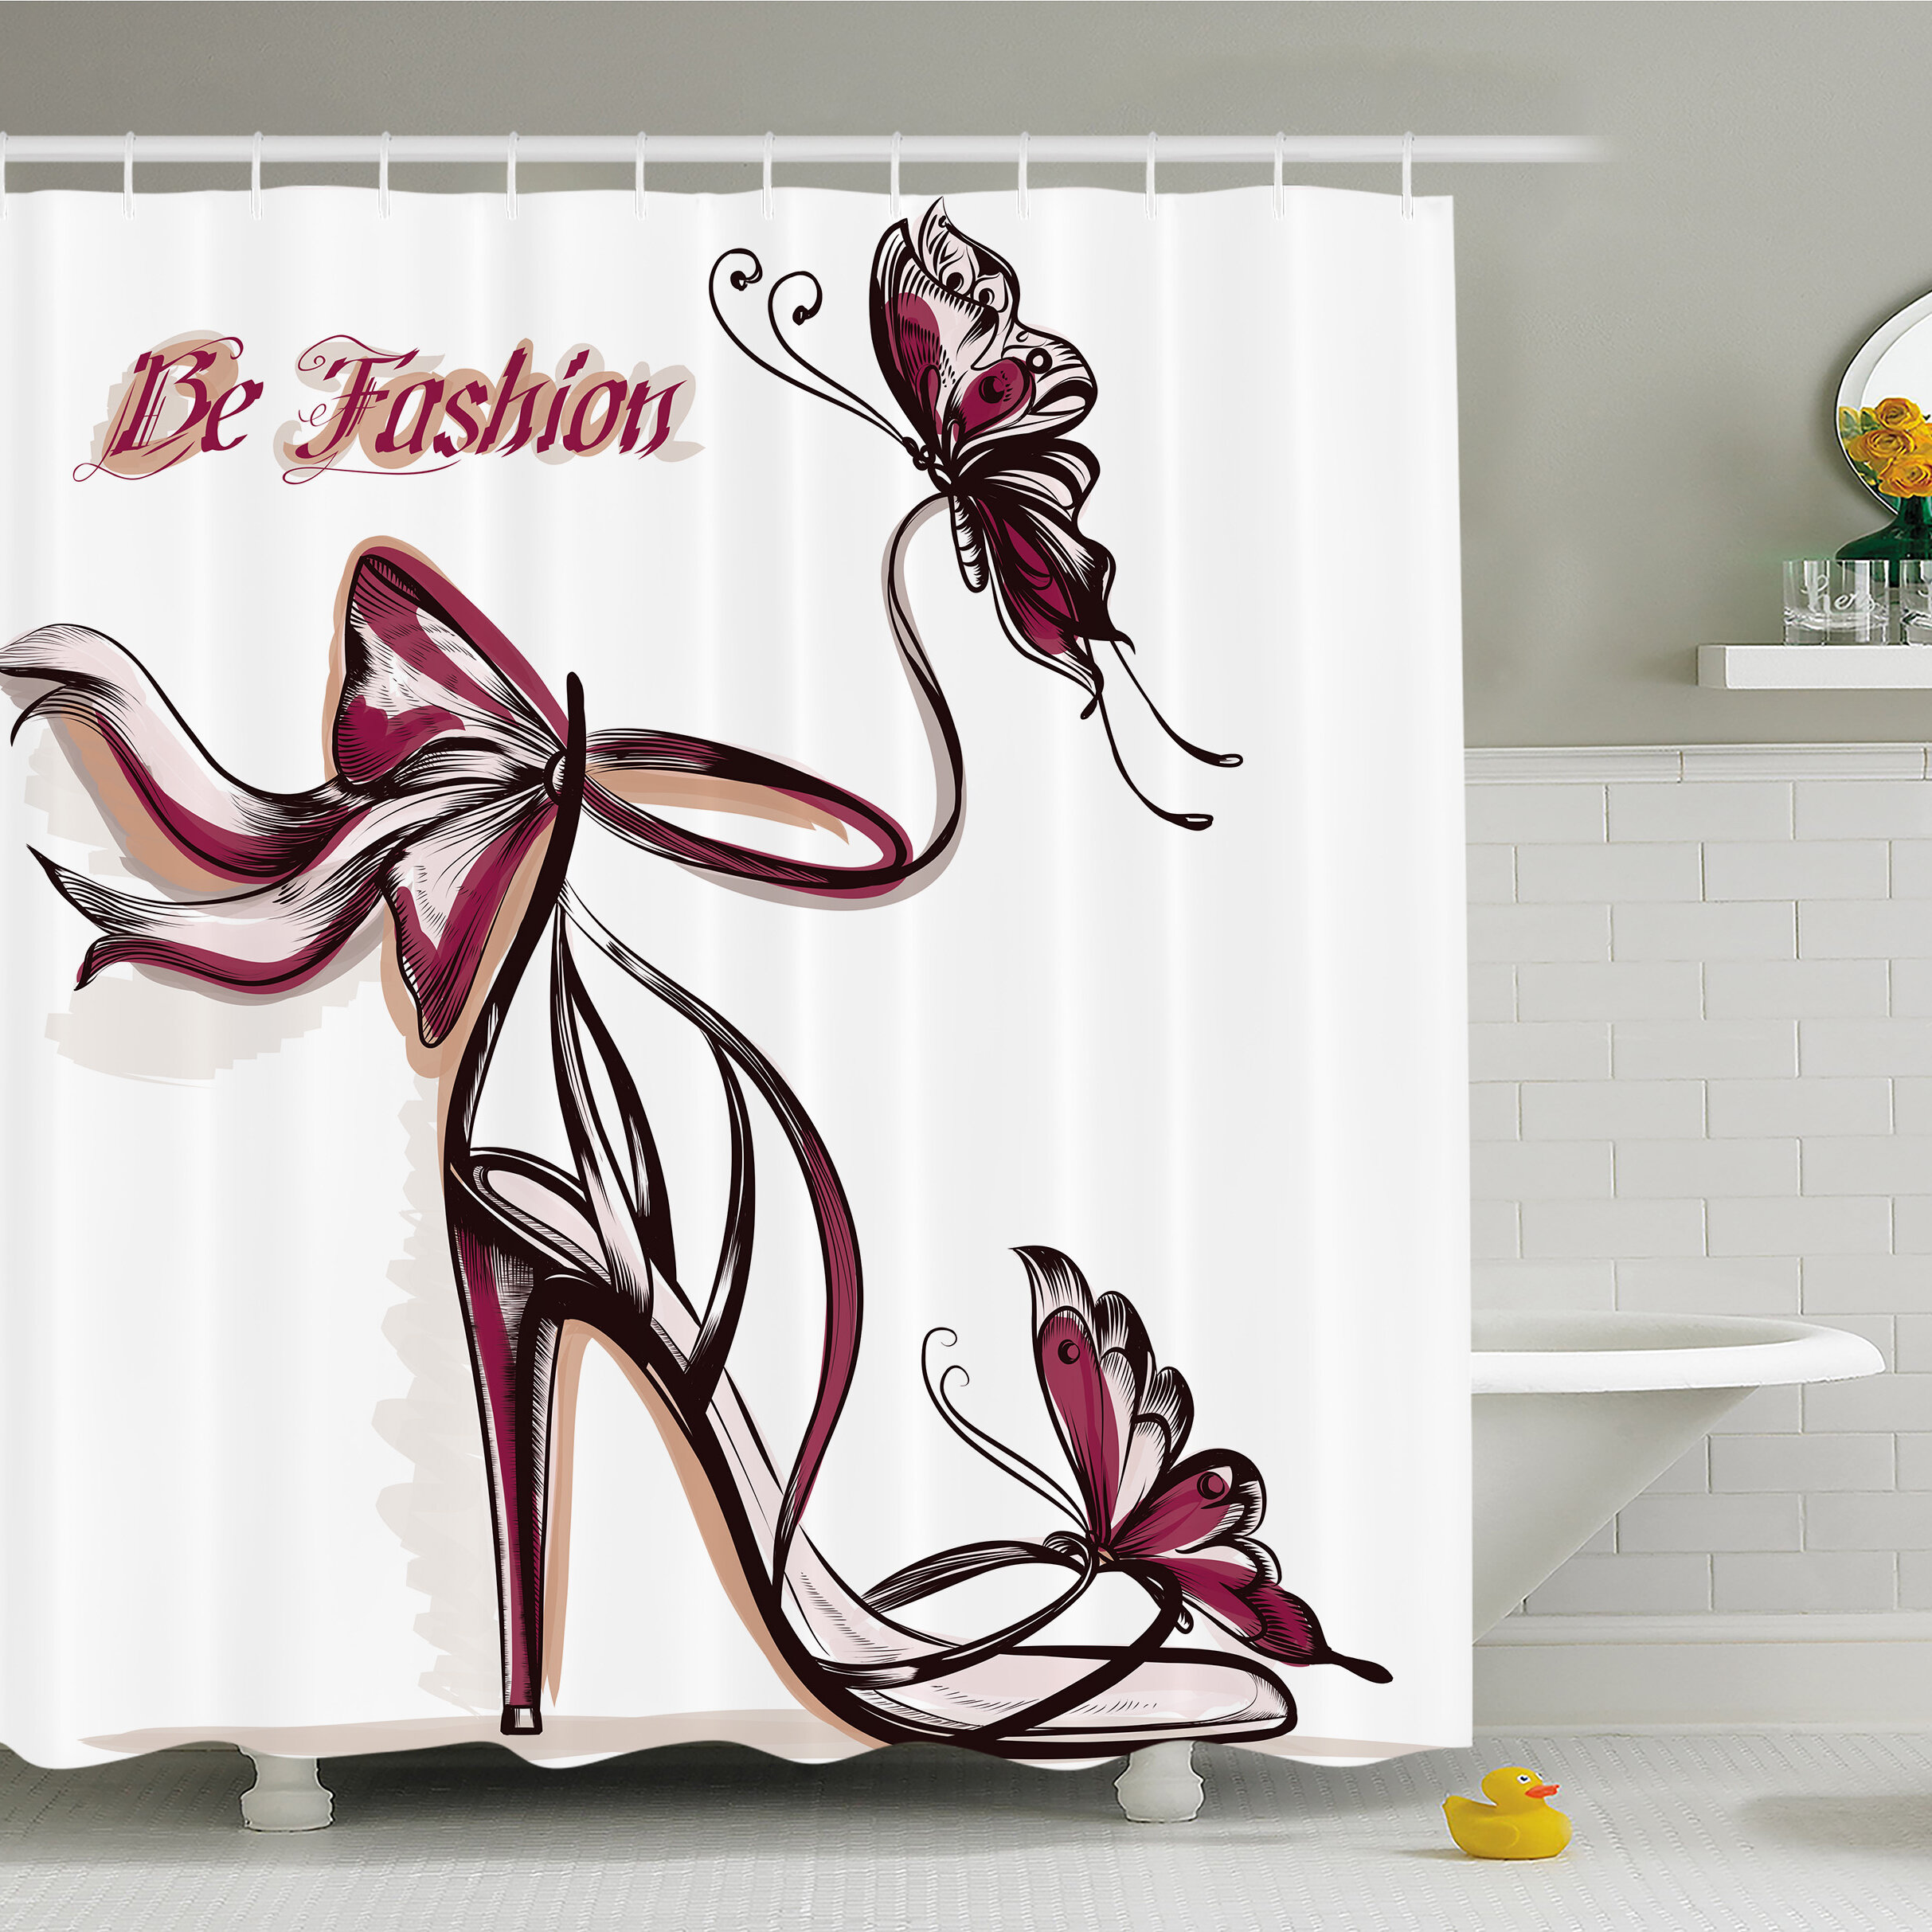 Ambesonne Fashion House High Heels With Butterfly And Ribbon Ornamentals Be Grace Spruceness Theme Shower Curtain Set